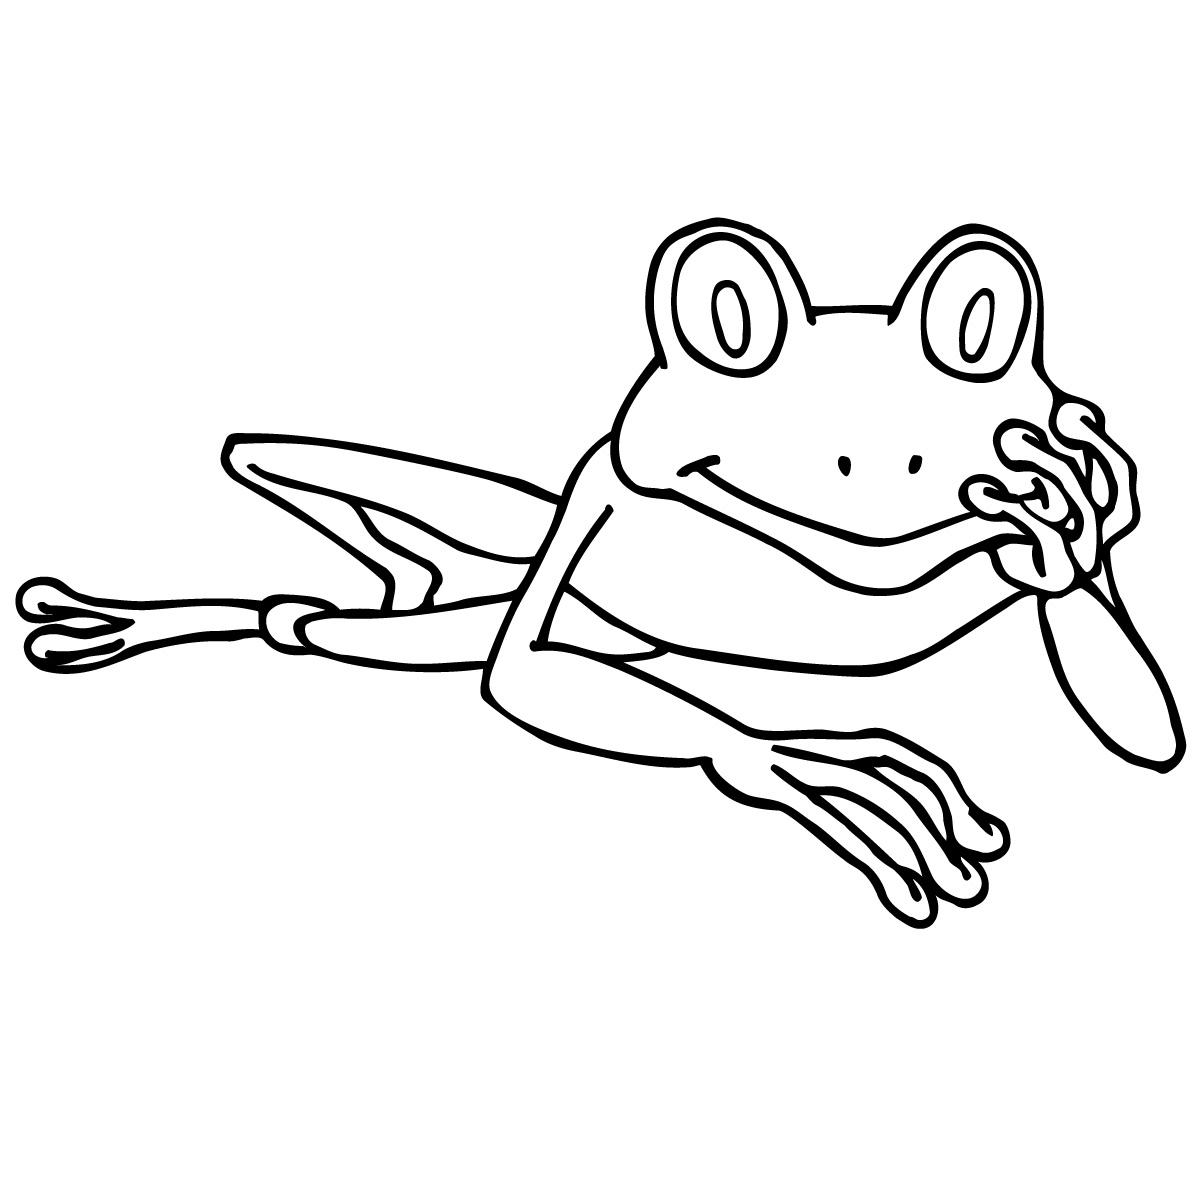 Frog Black And White Tree Frog Clipart Photos Gclipart